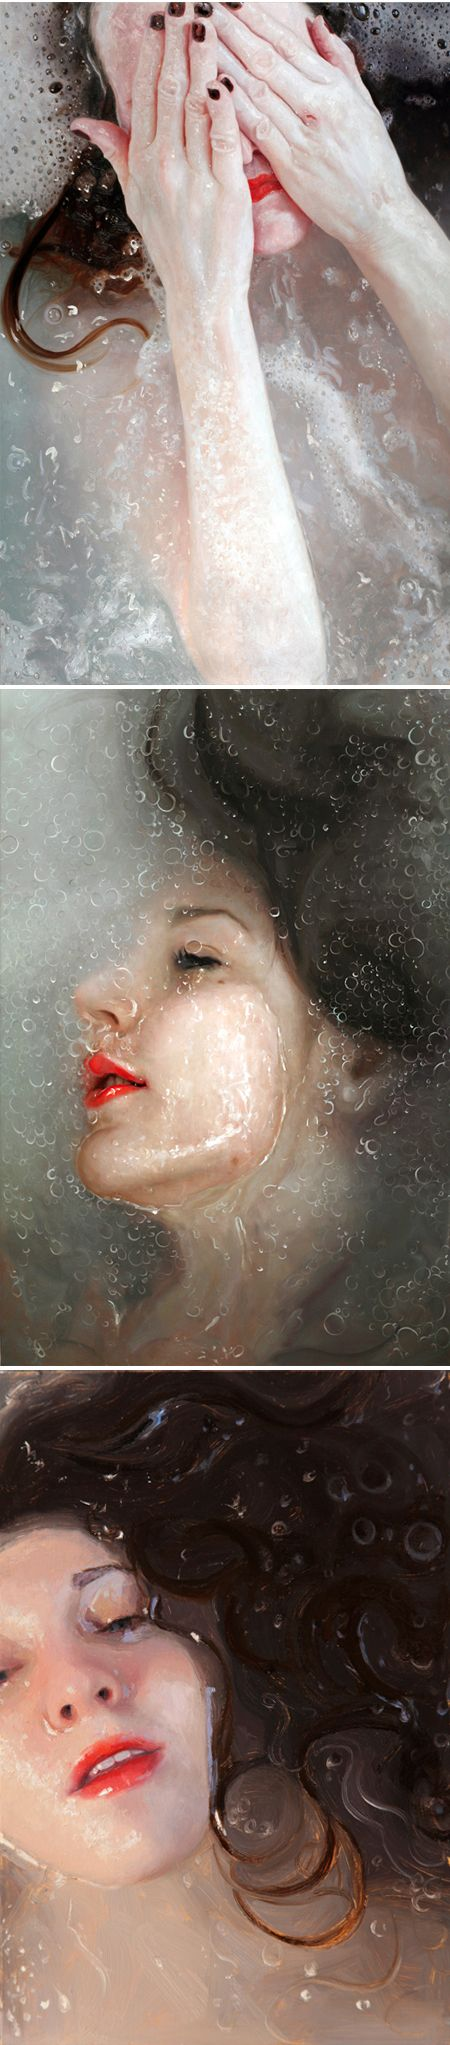 Alyssa Monks: NY based oil painter